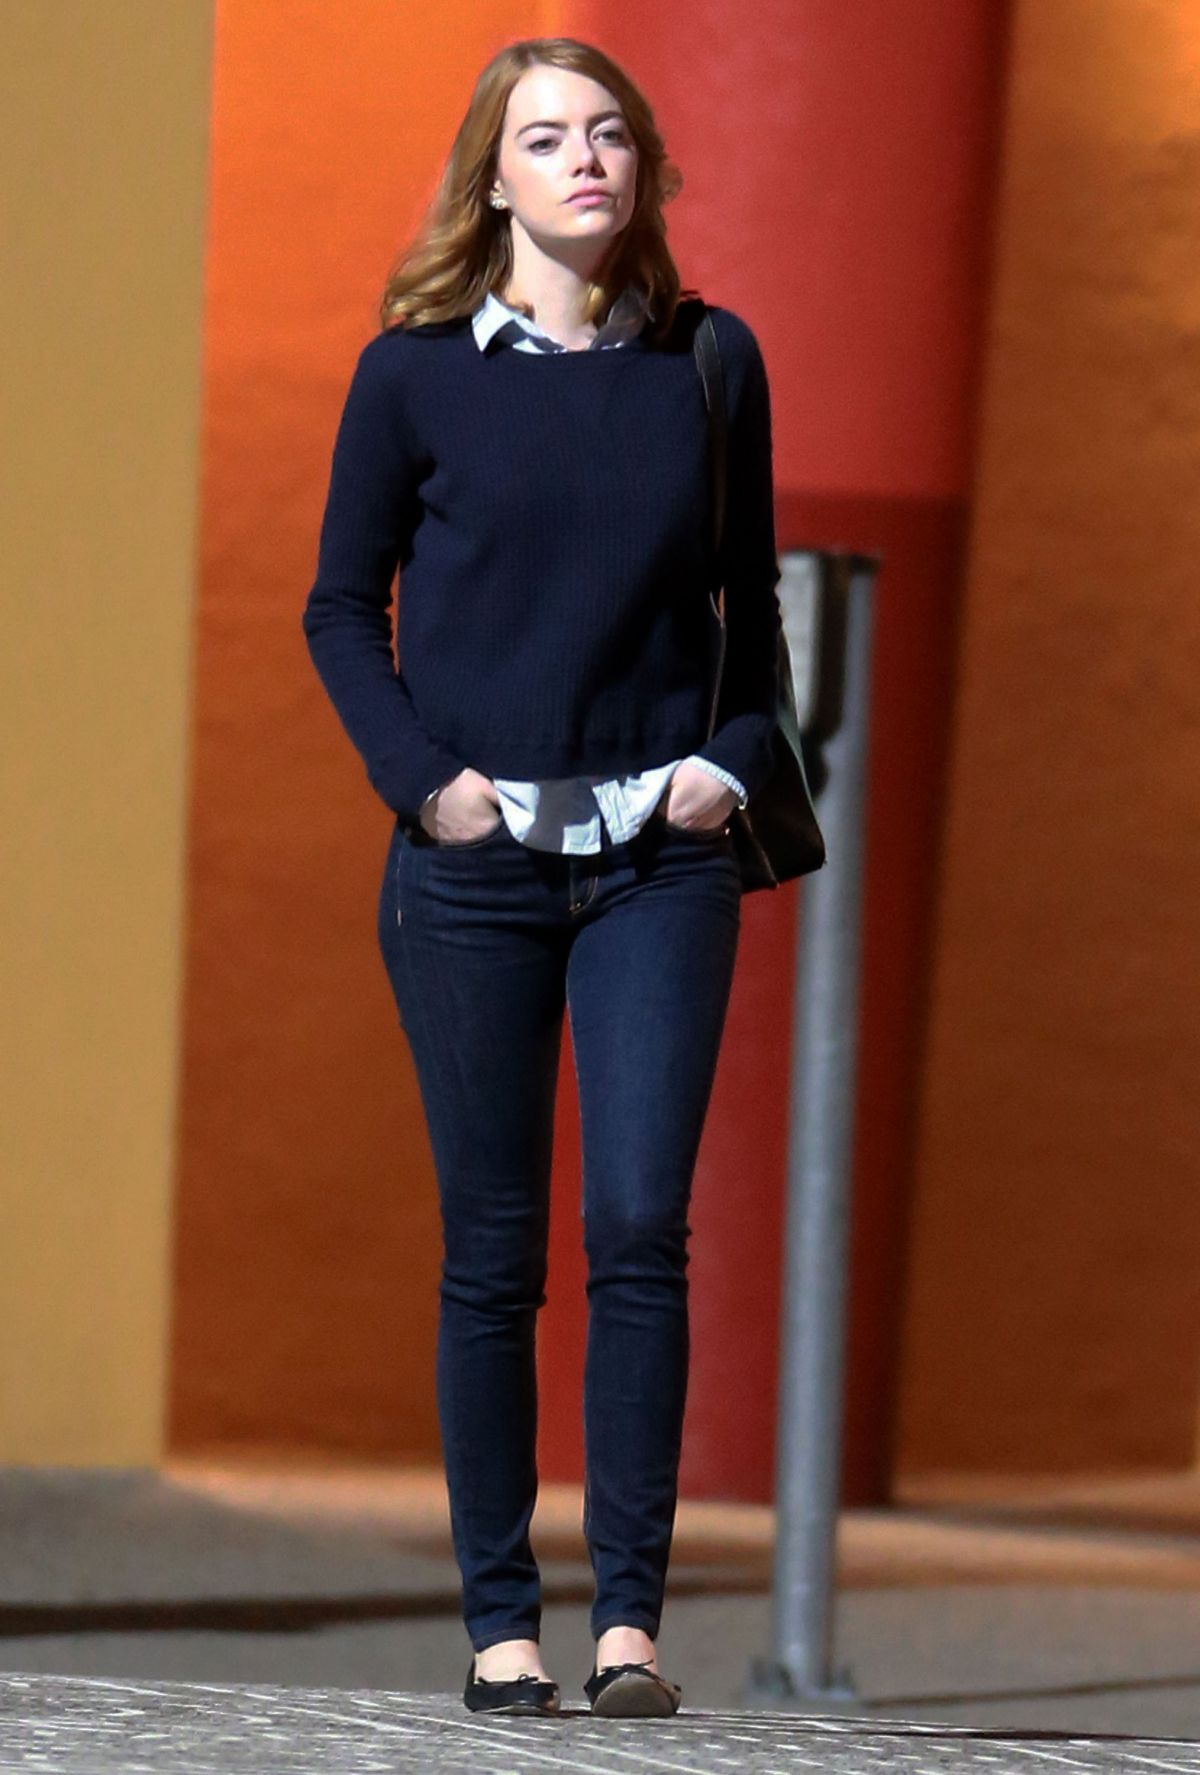 https://www.hawtcelebs.com/wp-content/uploads/2015/10/emma-stone-at-la-la-land-set-in-los-angeles-10-07-2015_7.jpg